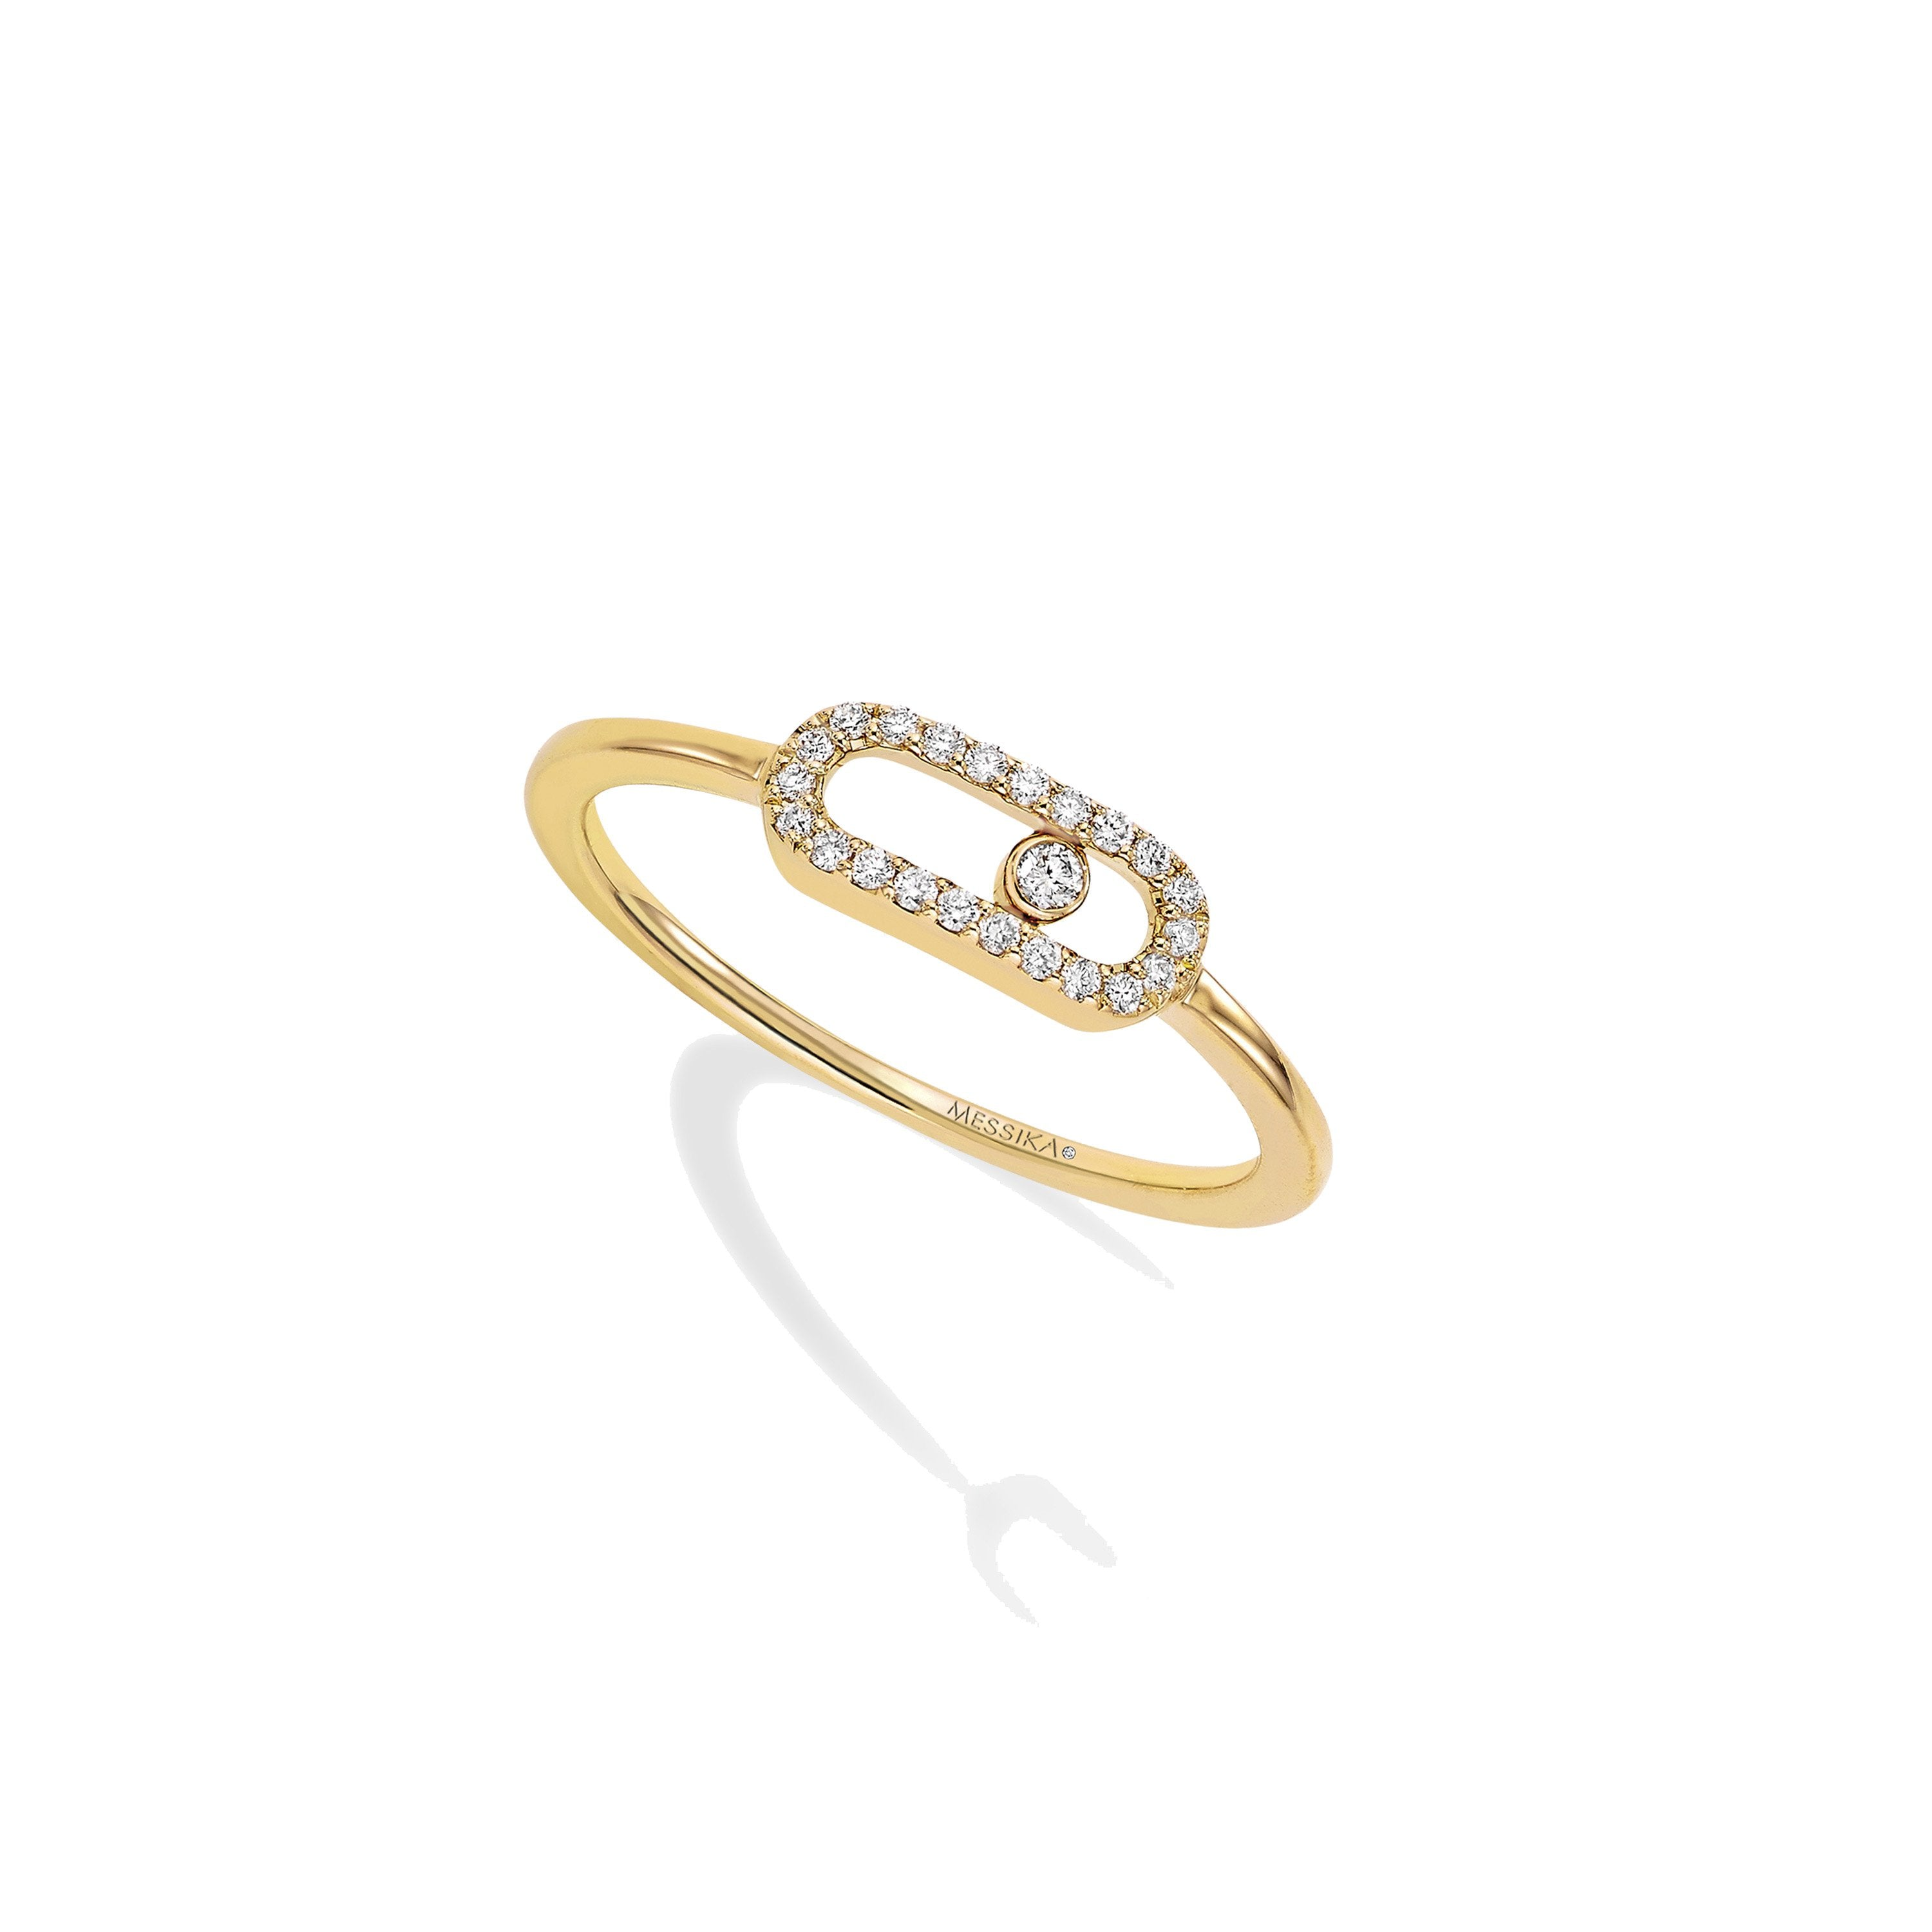 https://www.manfredijewels.com/collections/jewelry/products/yellow-gold-diamond-ring-move-uno